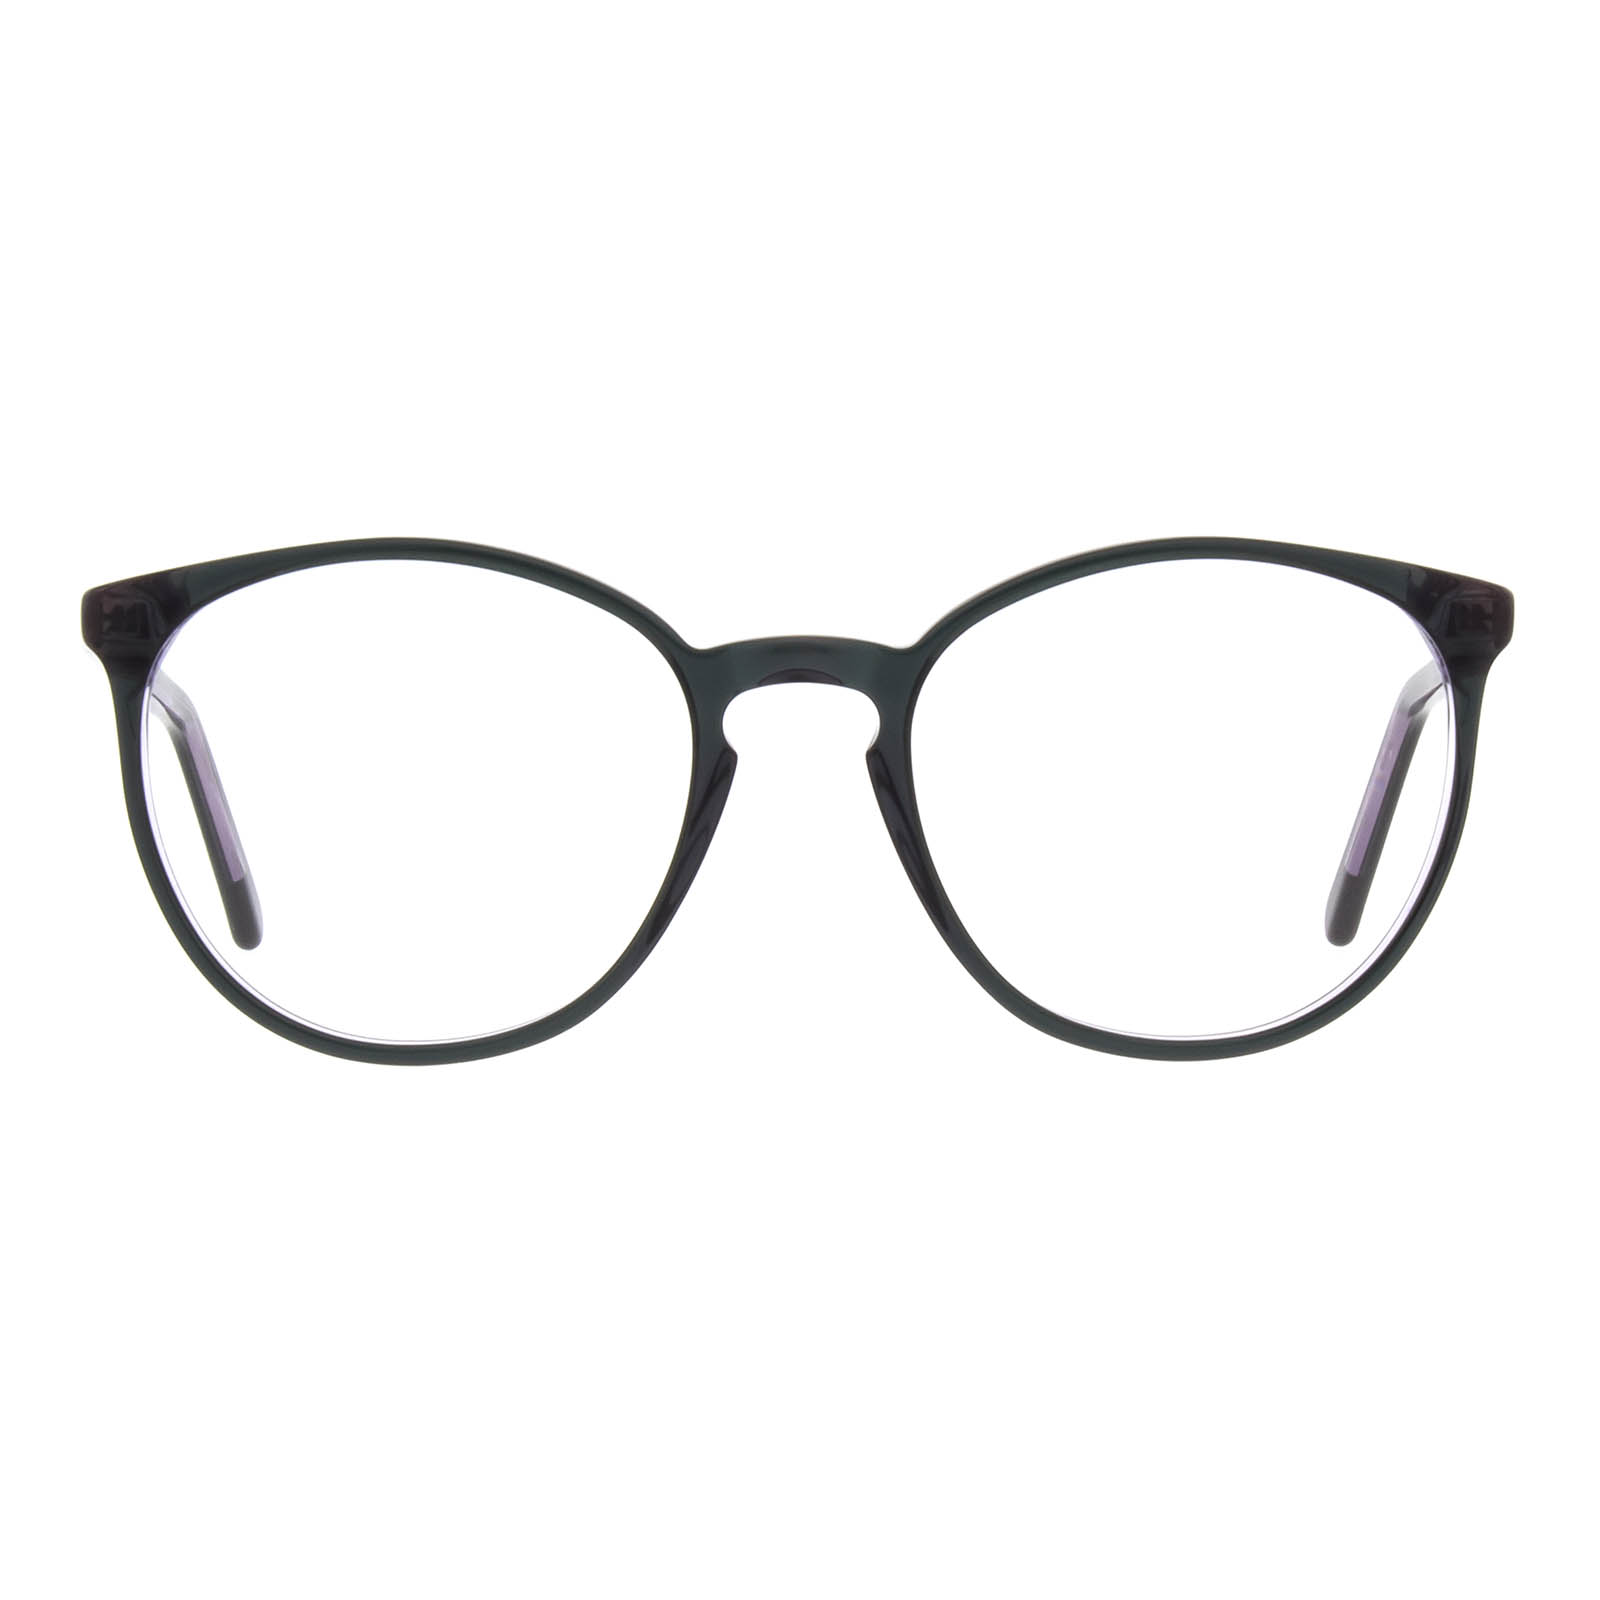 ANDY WOLF EYEWEAR_5085_6_front